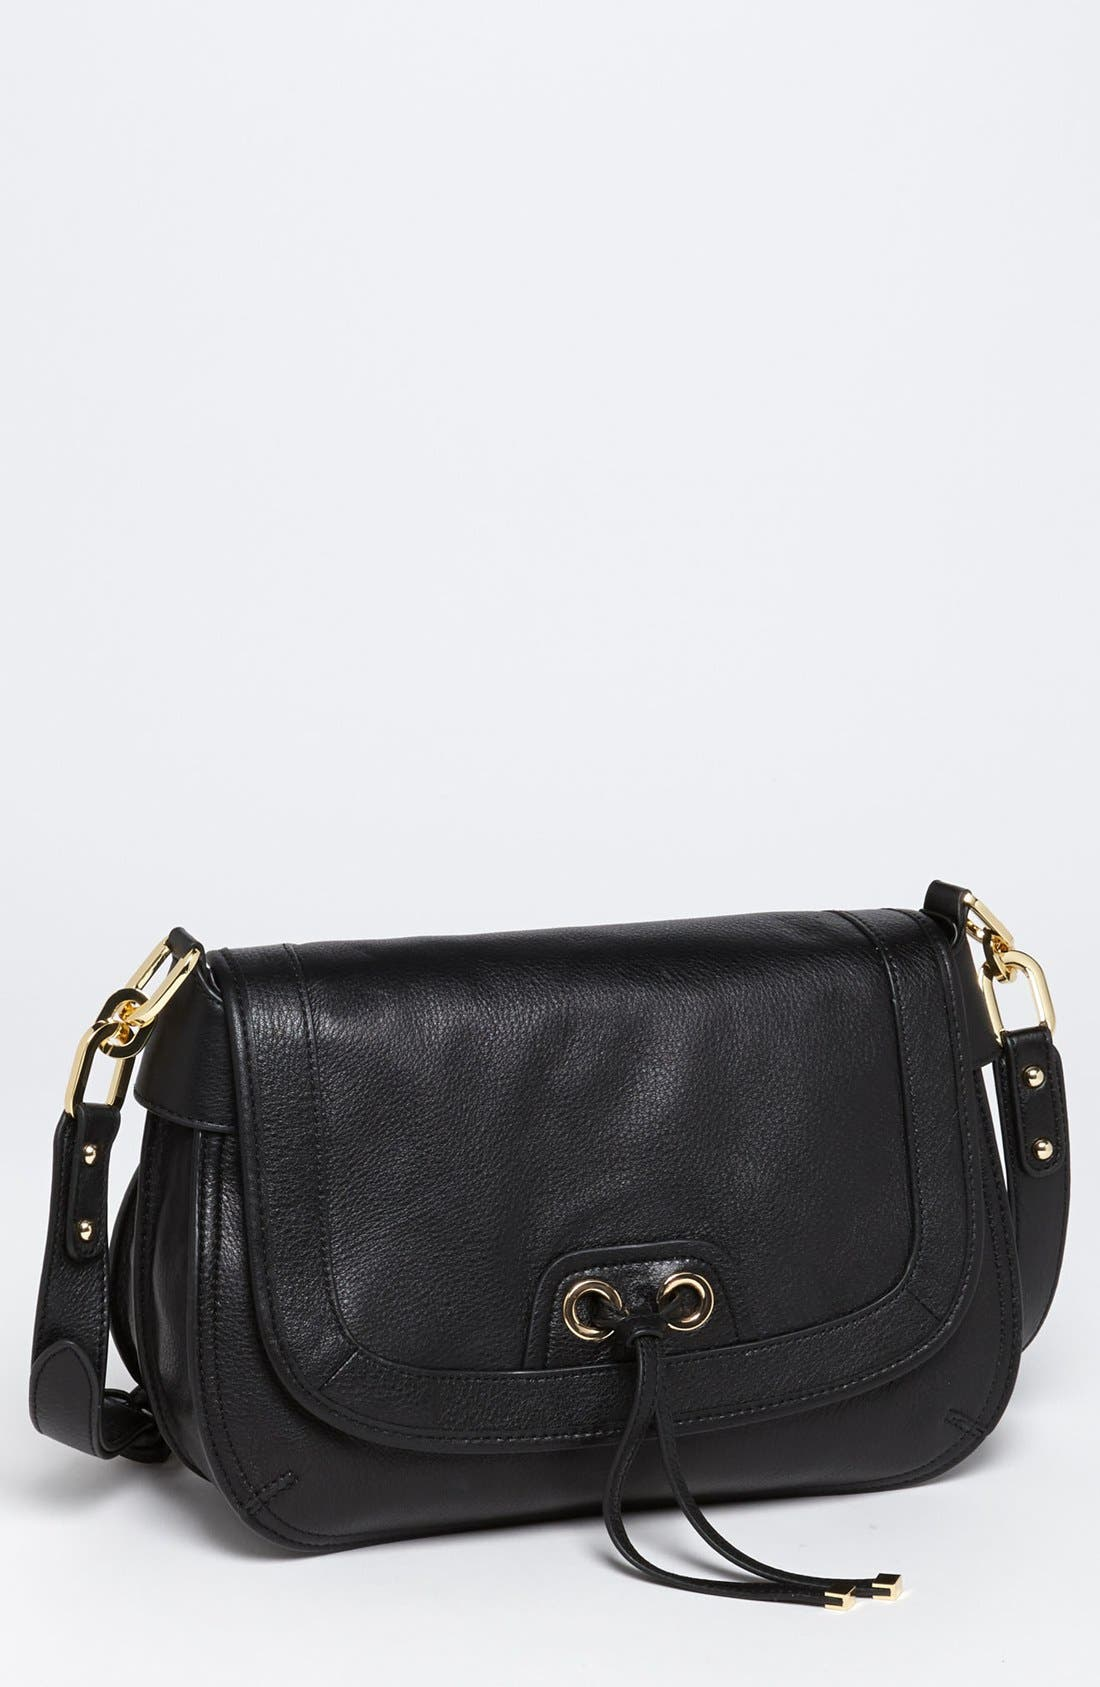 Main Image - Perlina 'Simone' Leather Crossbody Bag